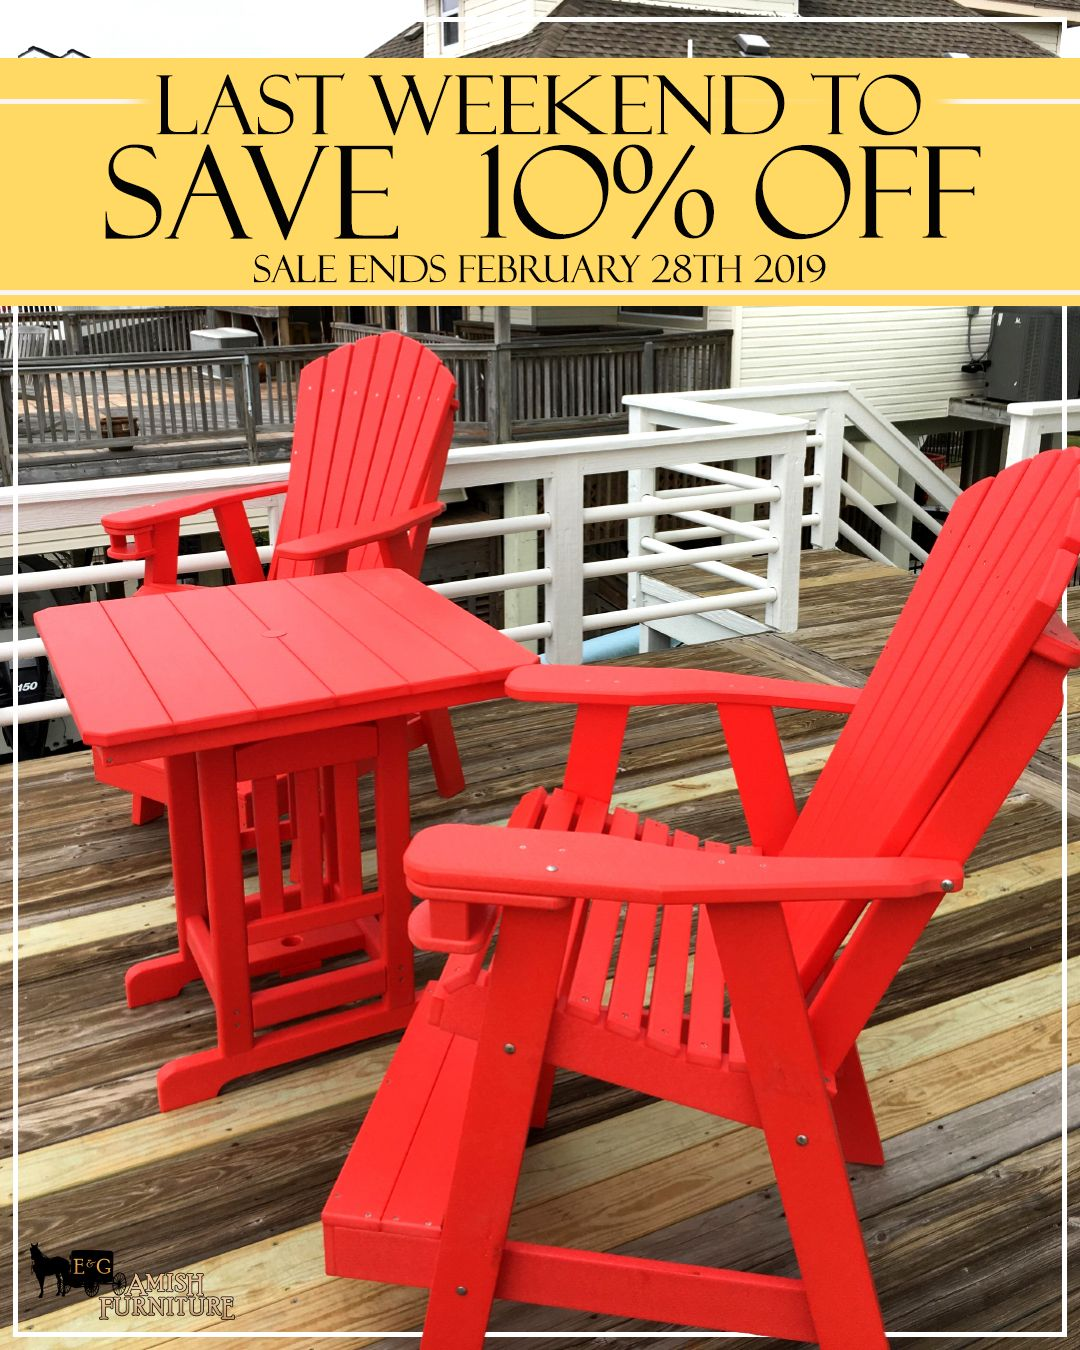 Patio Furniture For Sale, Amish